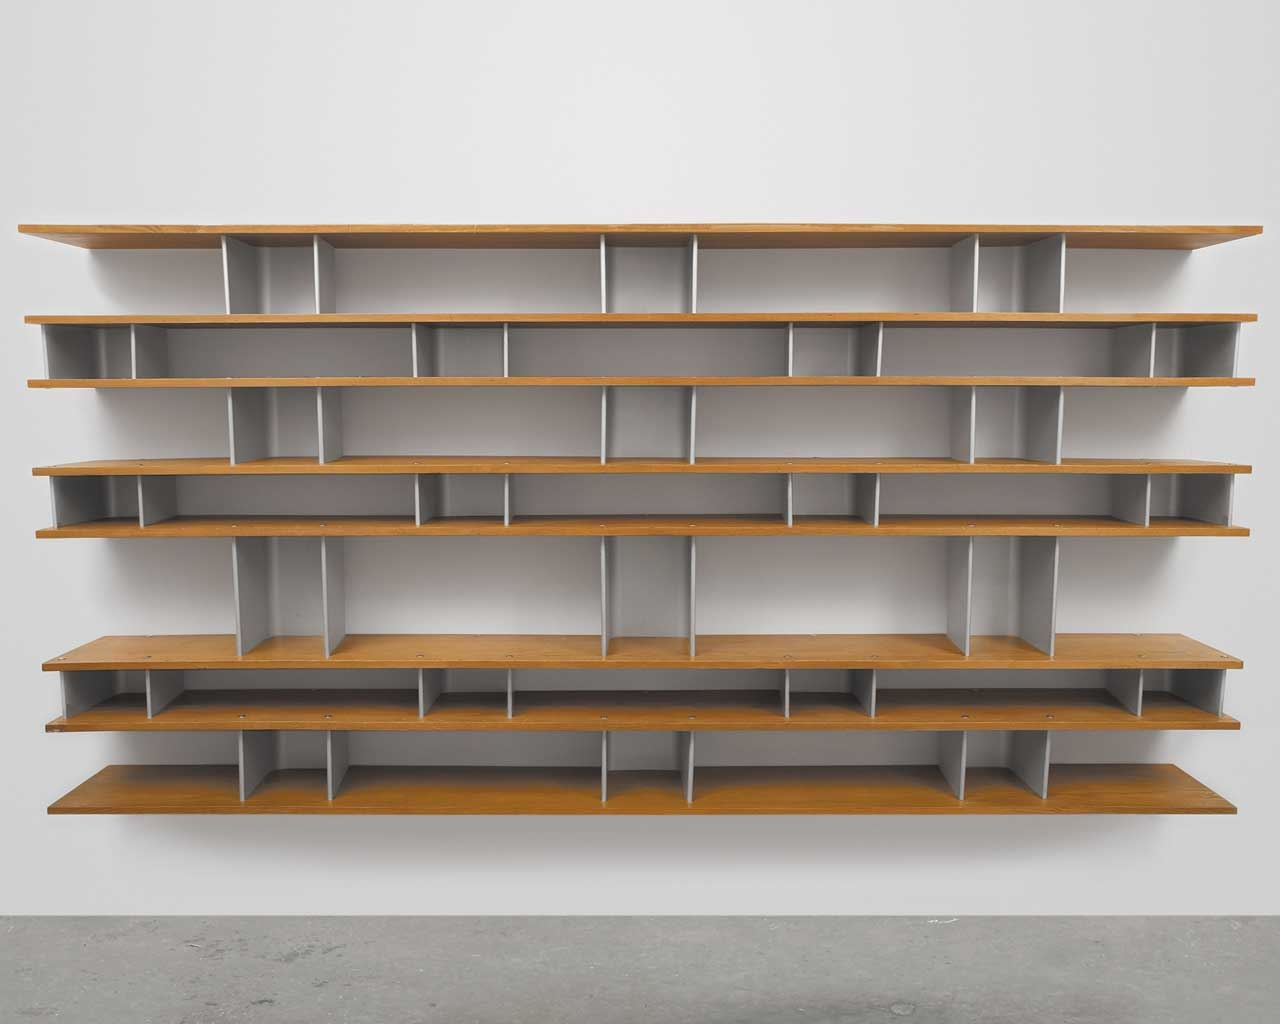 Wall Sized Bookshelves Idi Design Throughout Full Wall Bookcases (View 15 of 15)